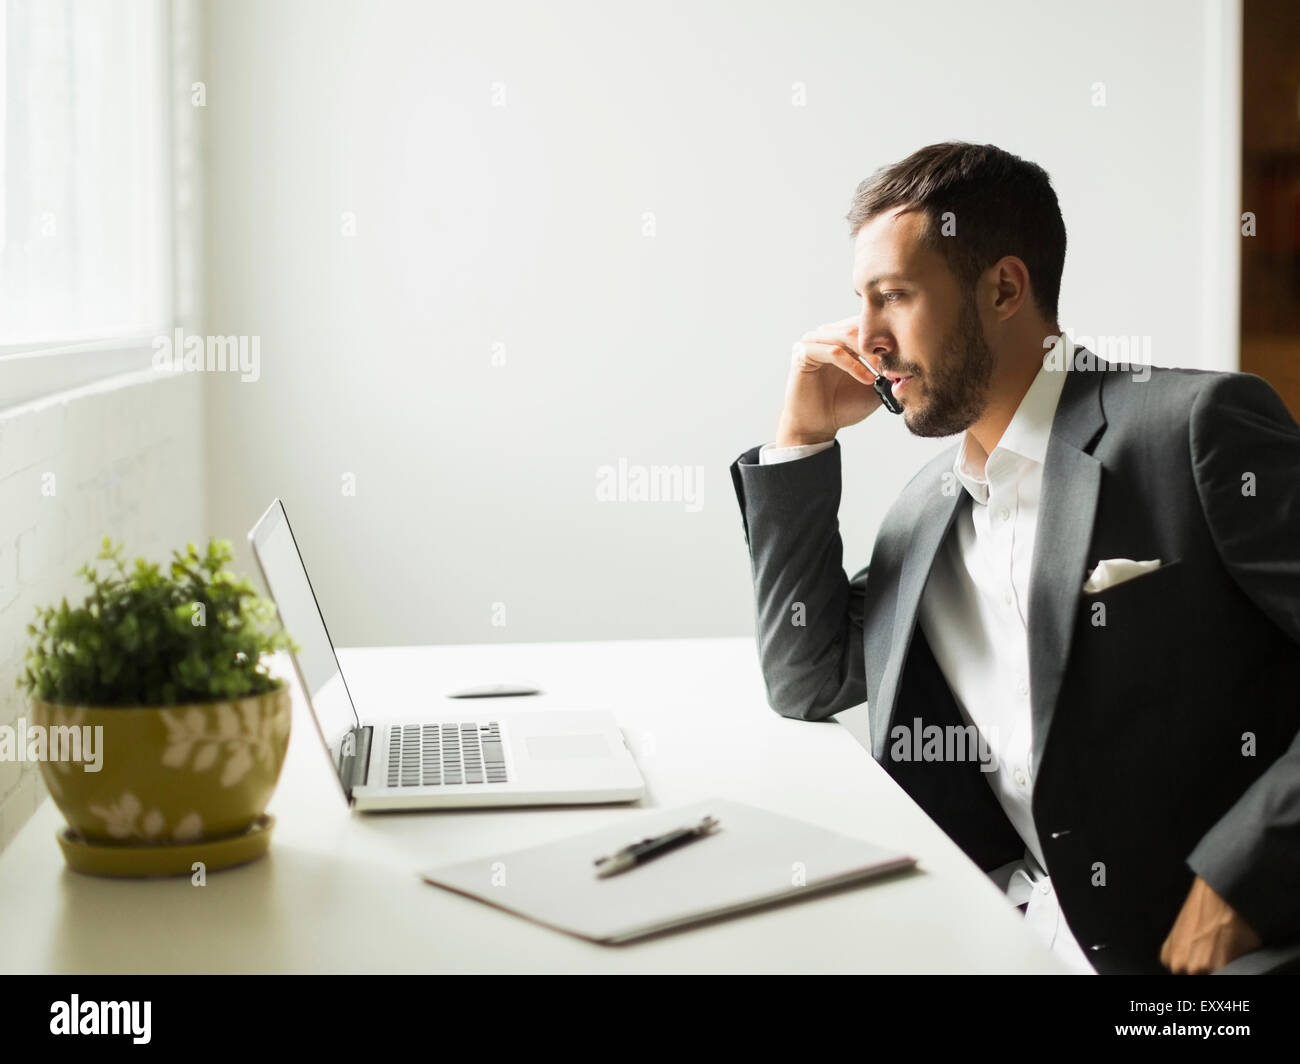 Young man sitting at desk and looking at laptop - Stock Image